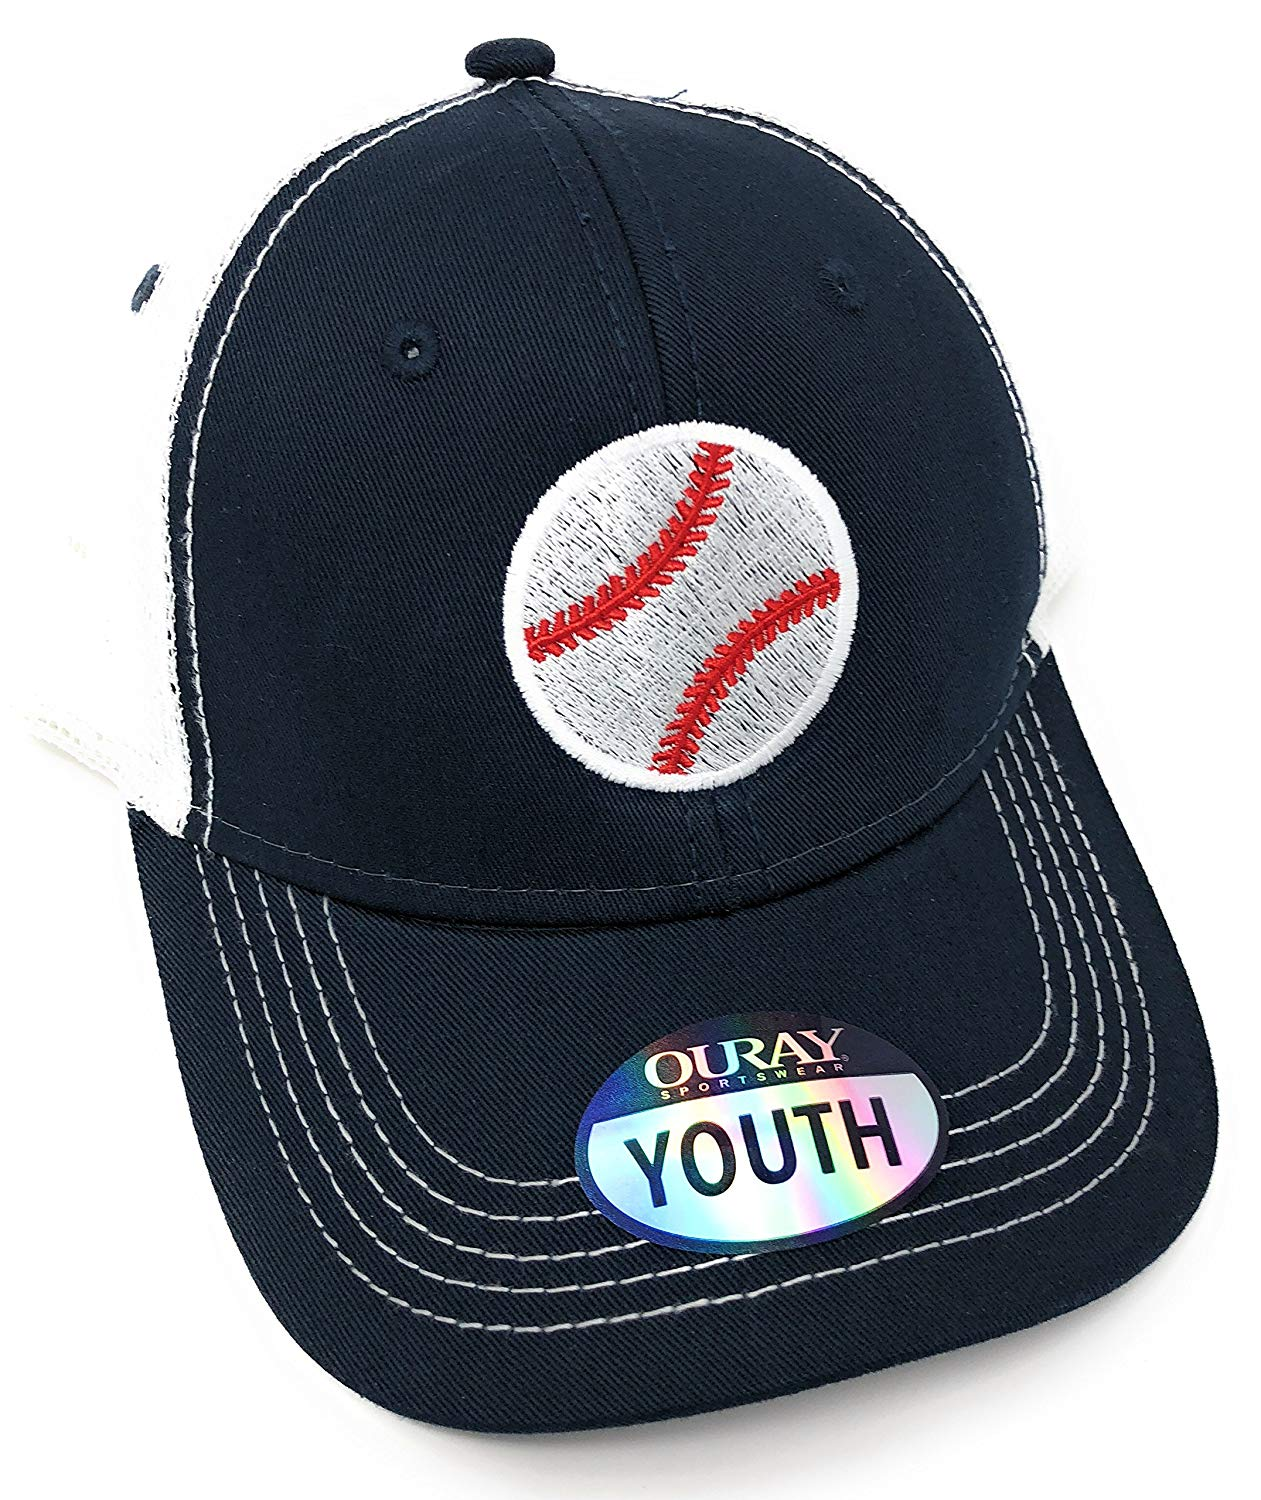 Custom Embroidered Youth Trucker Hat (Navy/White)